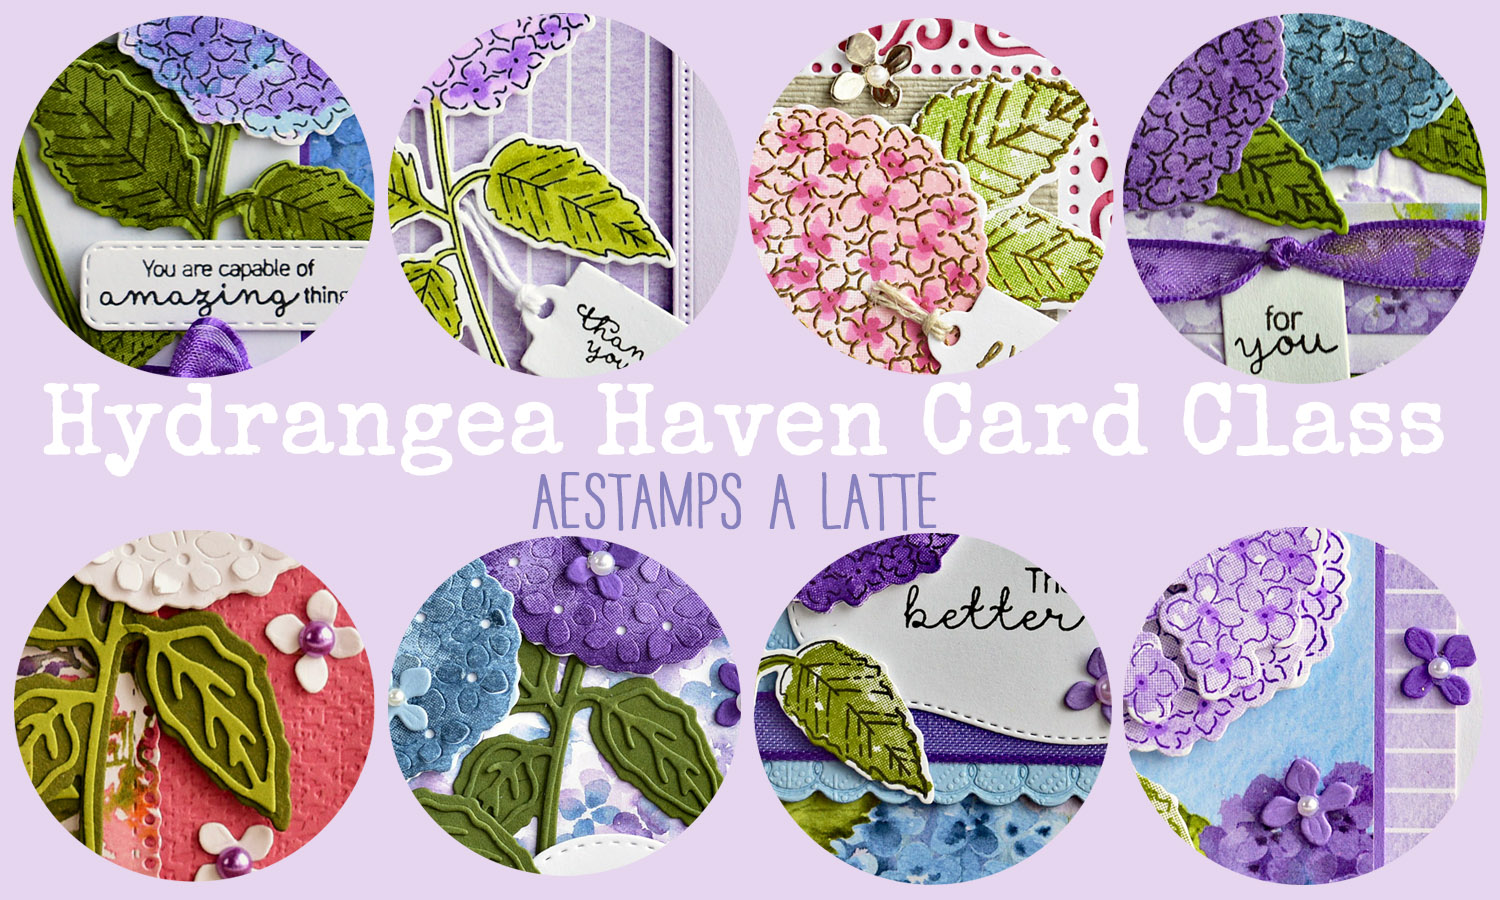 Hydrangea Haven Card Class